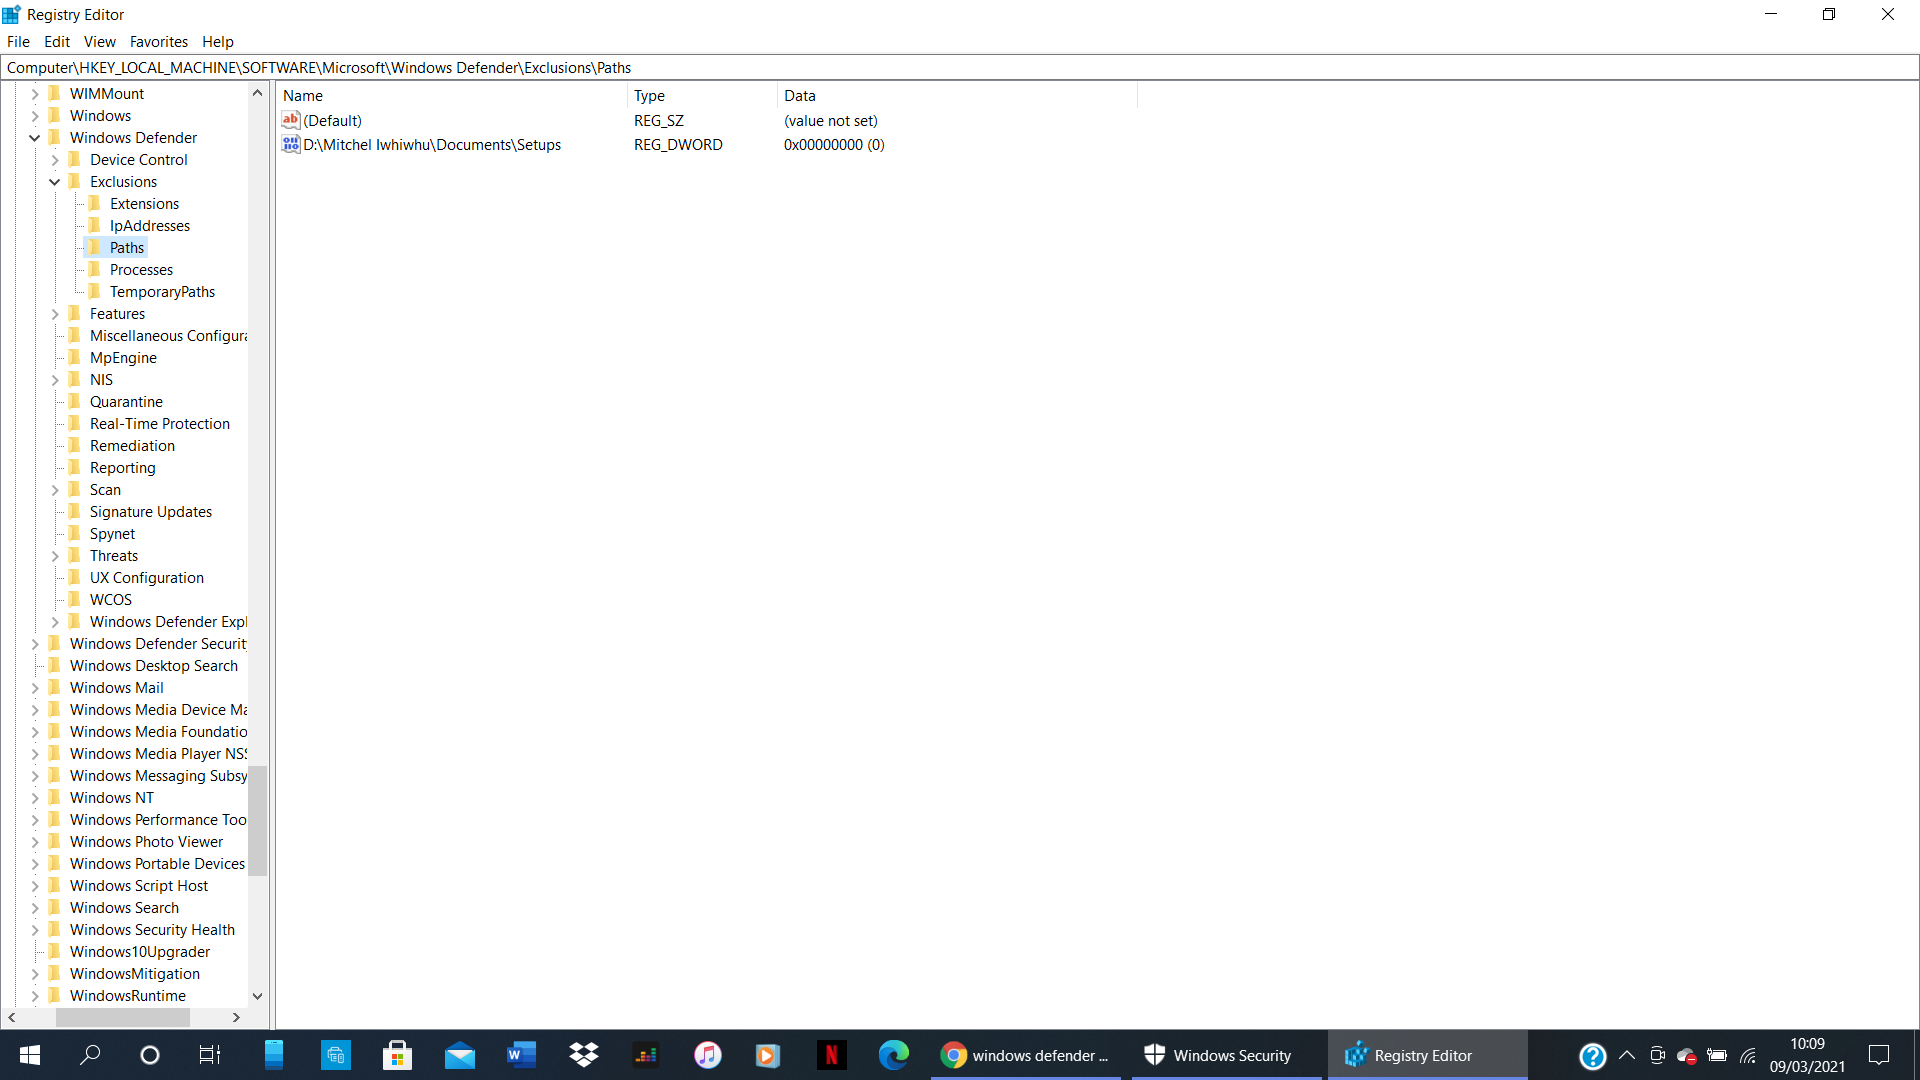 Windows Defender showing a list of greyed out Exclusions, but they don't show in the list... bafef710-bba2-4df7-a66b-538ed2eff3ad?upload=true.png